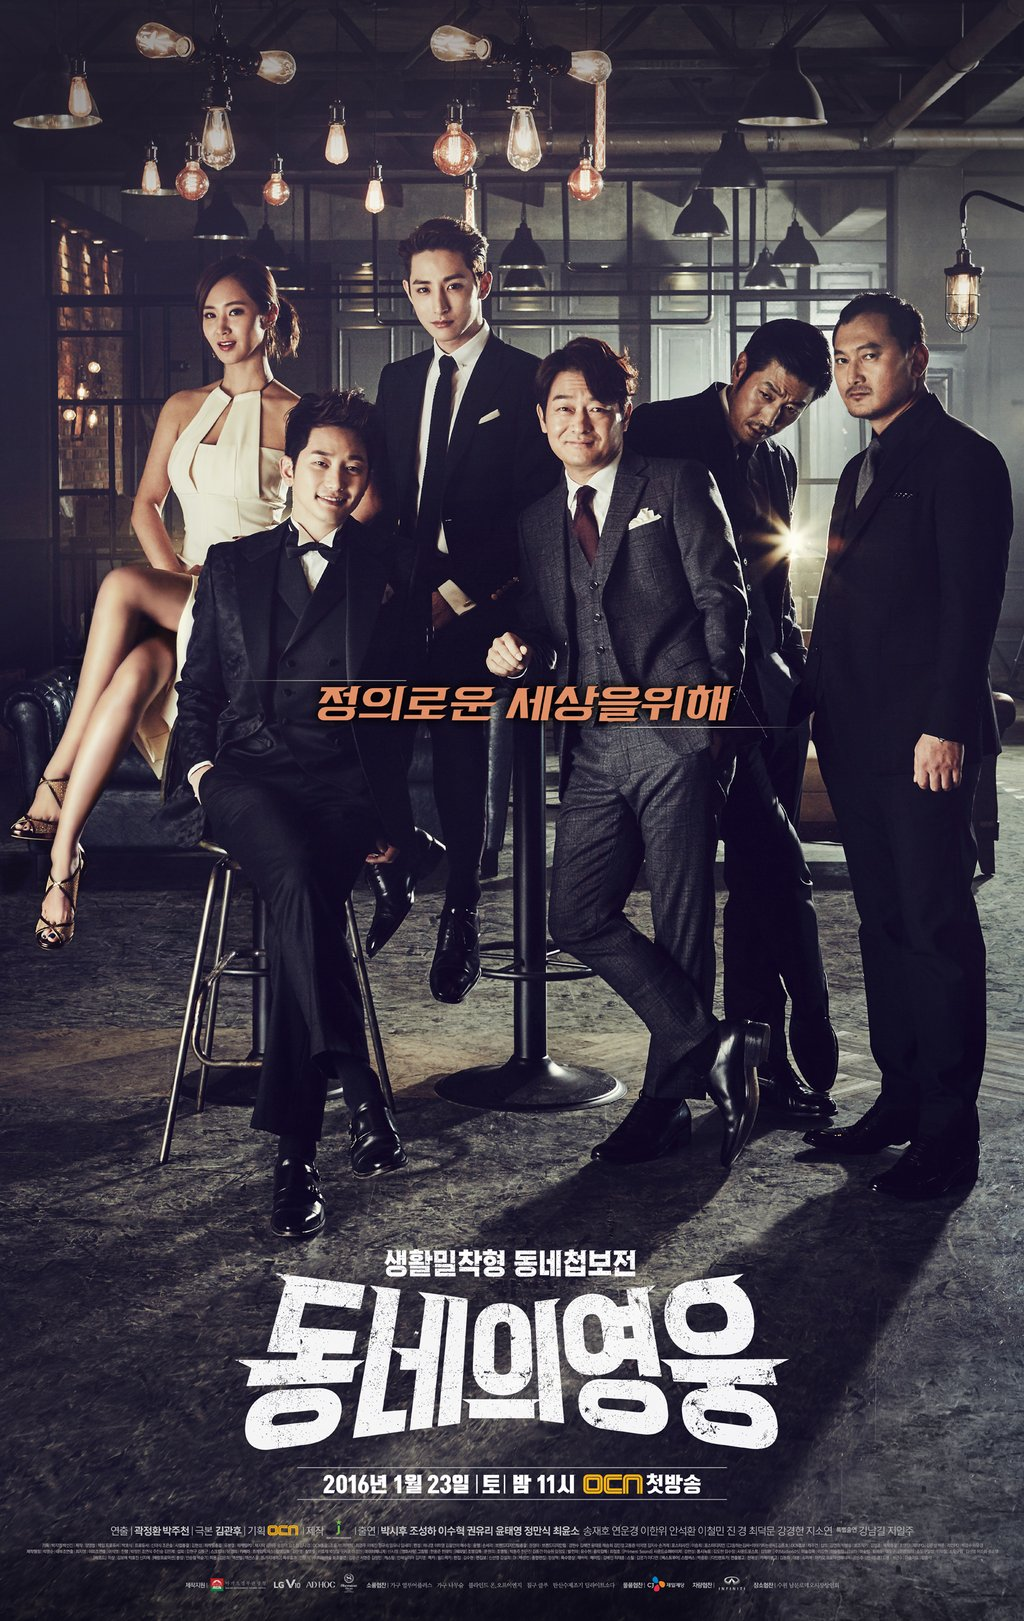 http://www.koreandrama.org/wp-content/uploads/2015/12/Neighborhood-Hero-Poster-2.jpg